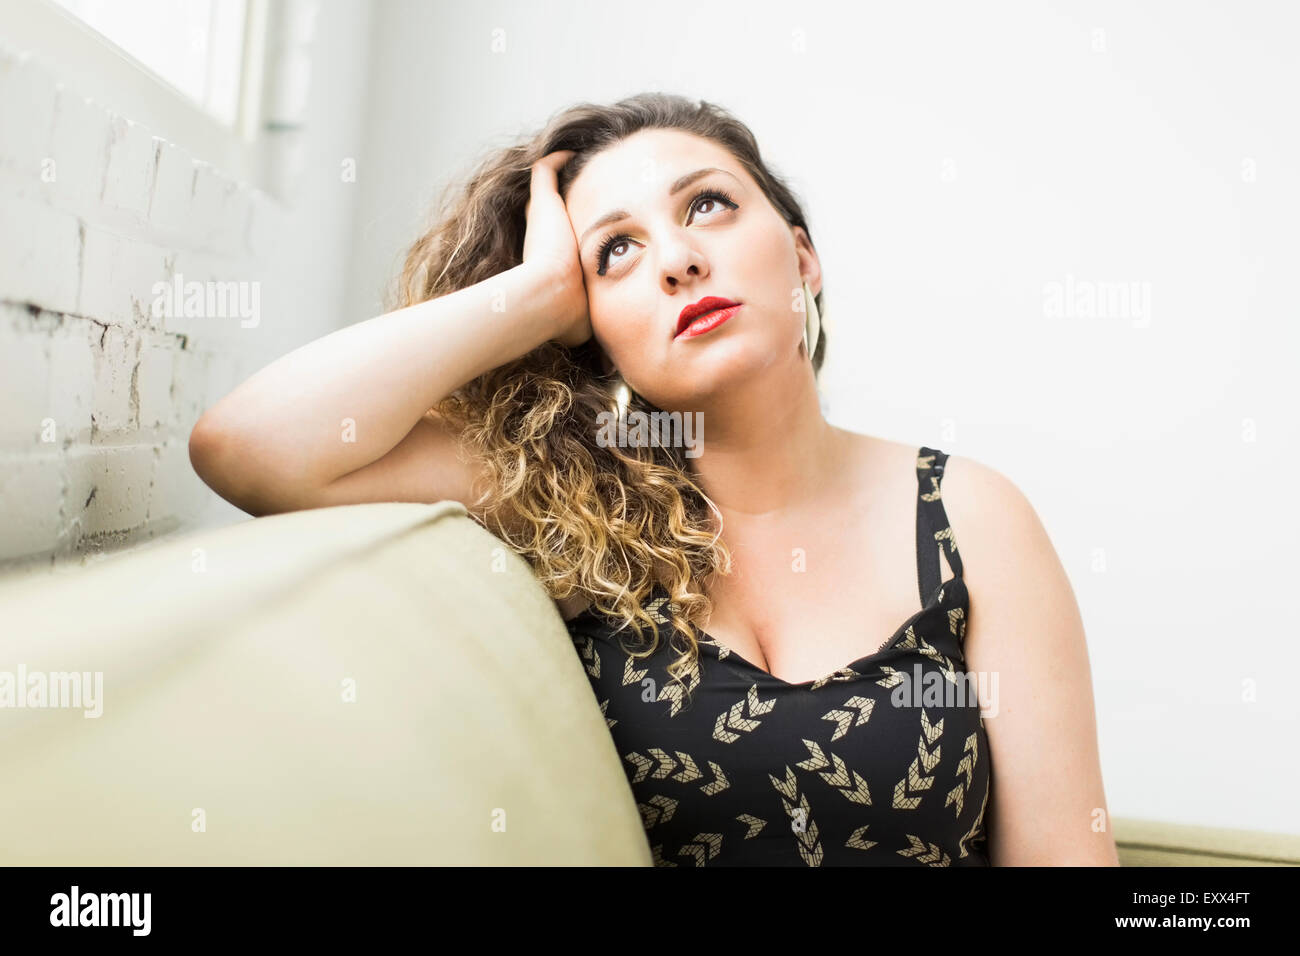 Woman looking up and daydreaming - Stock Image